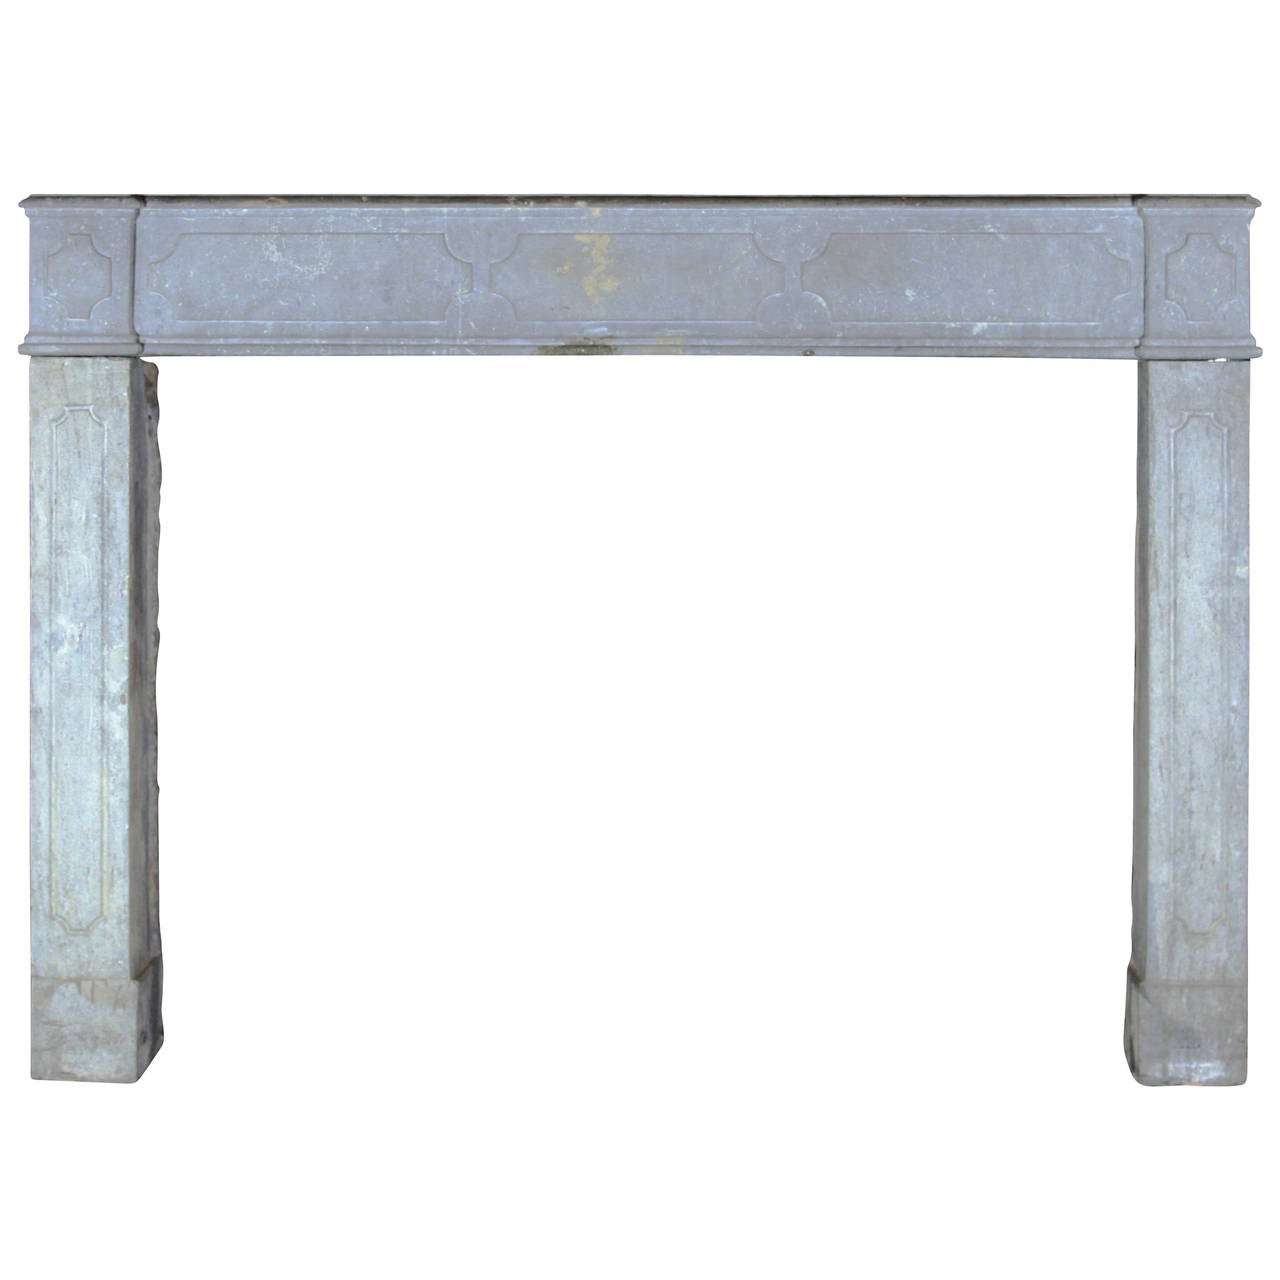 18th Century Stone antique fireplace Mantel, Built in Louis XIV Period